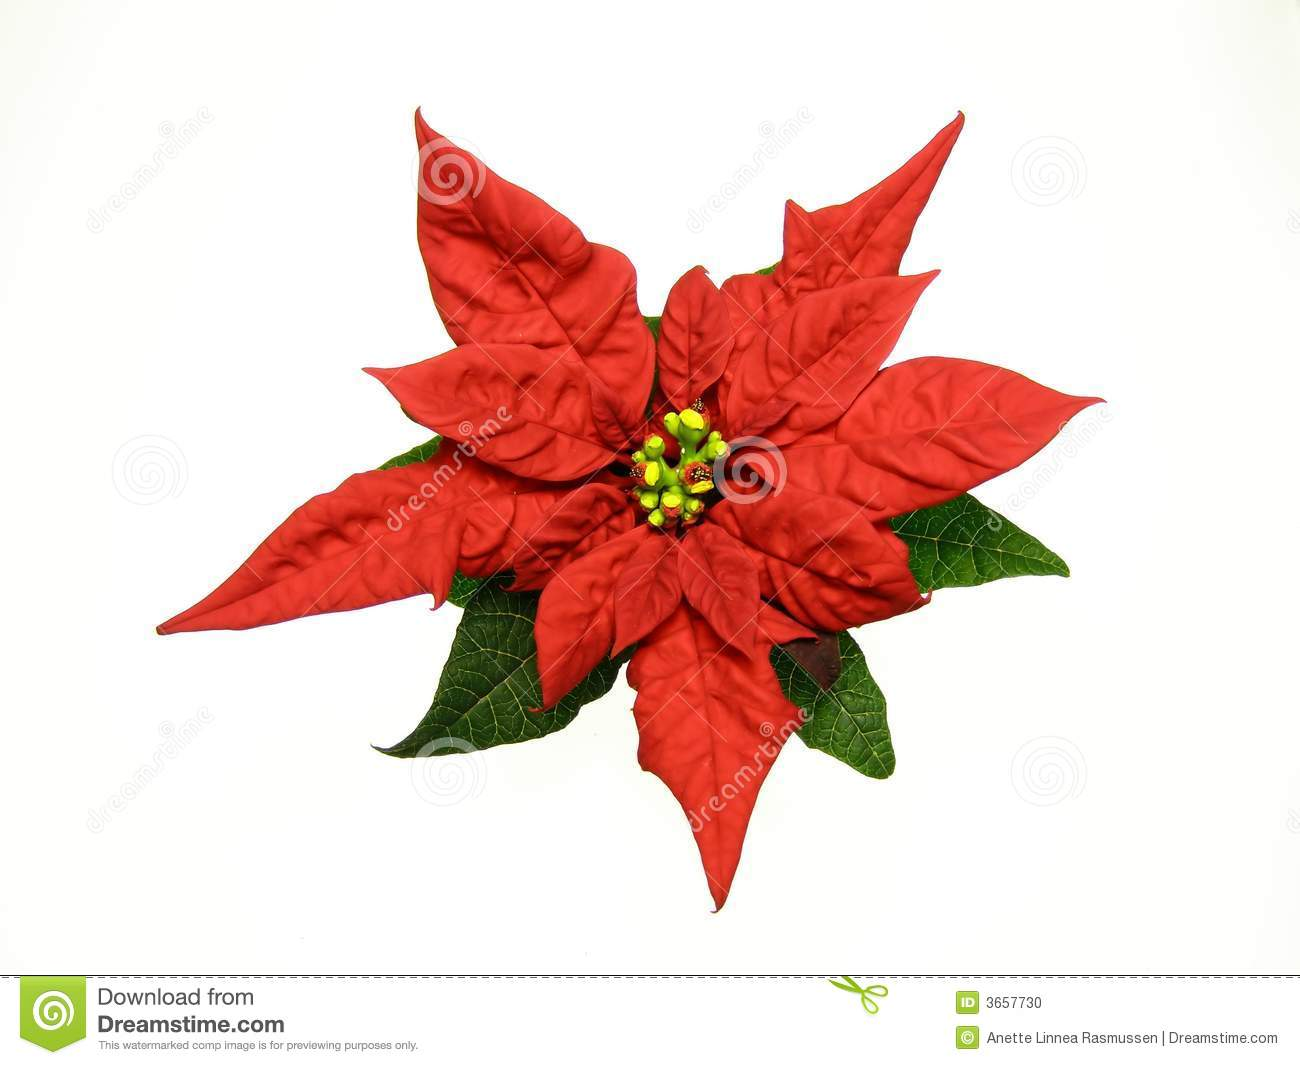 red poinsettias christmas flower stock photo - Christmas Poinsettia